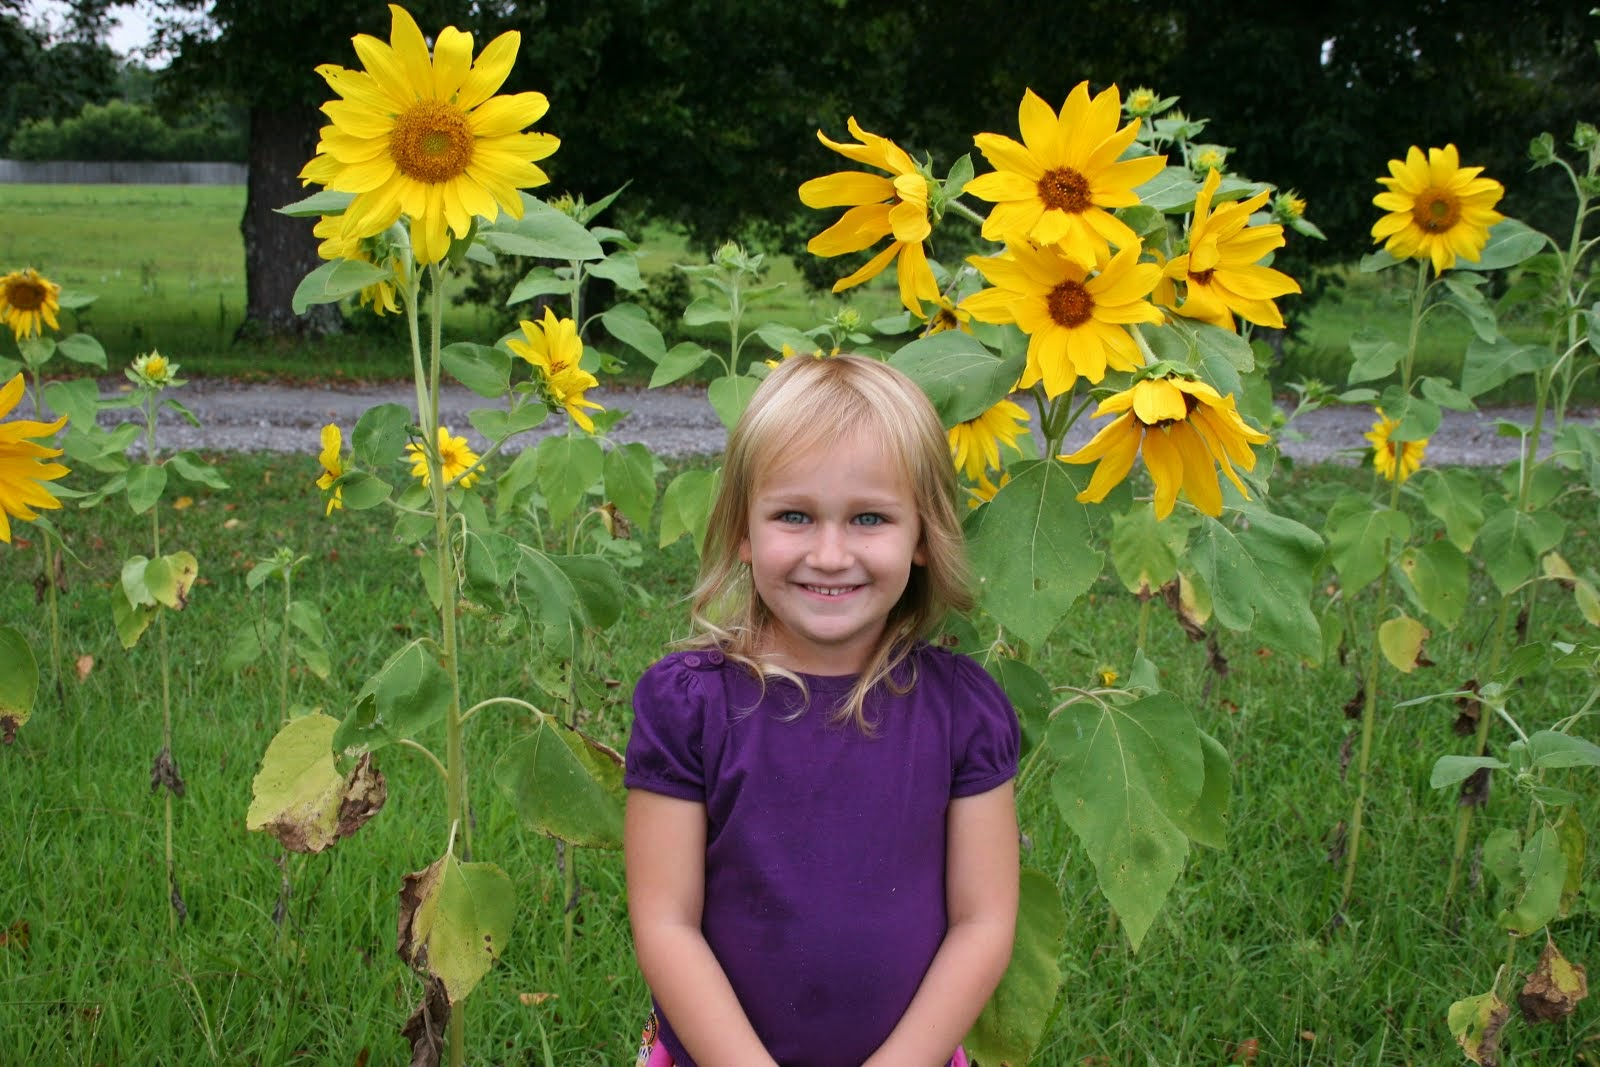 Rosemary Rebekah- 4 years